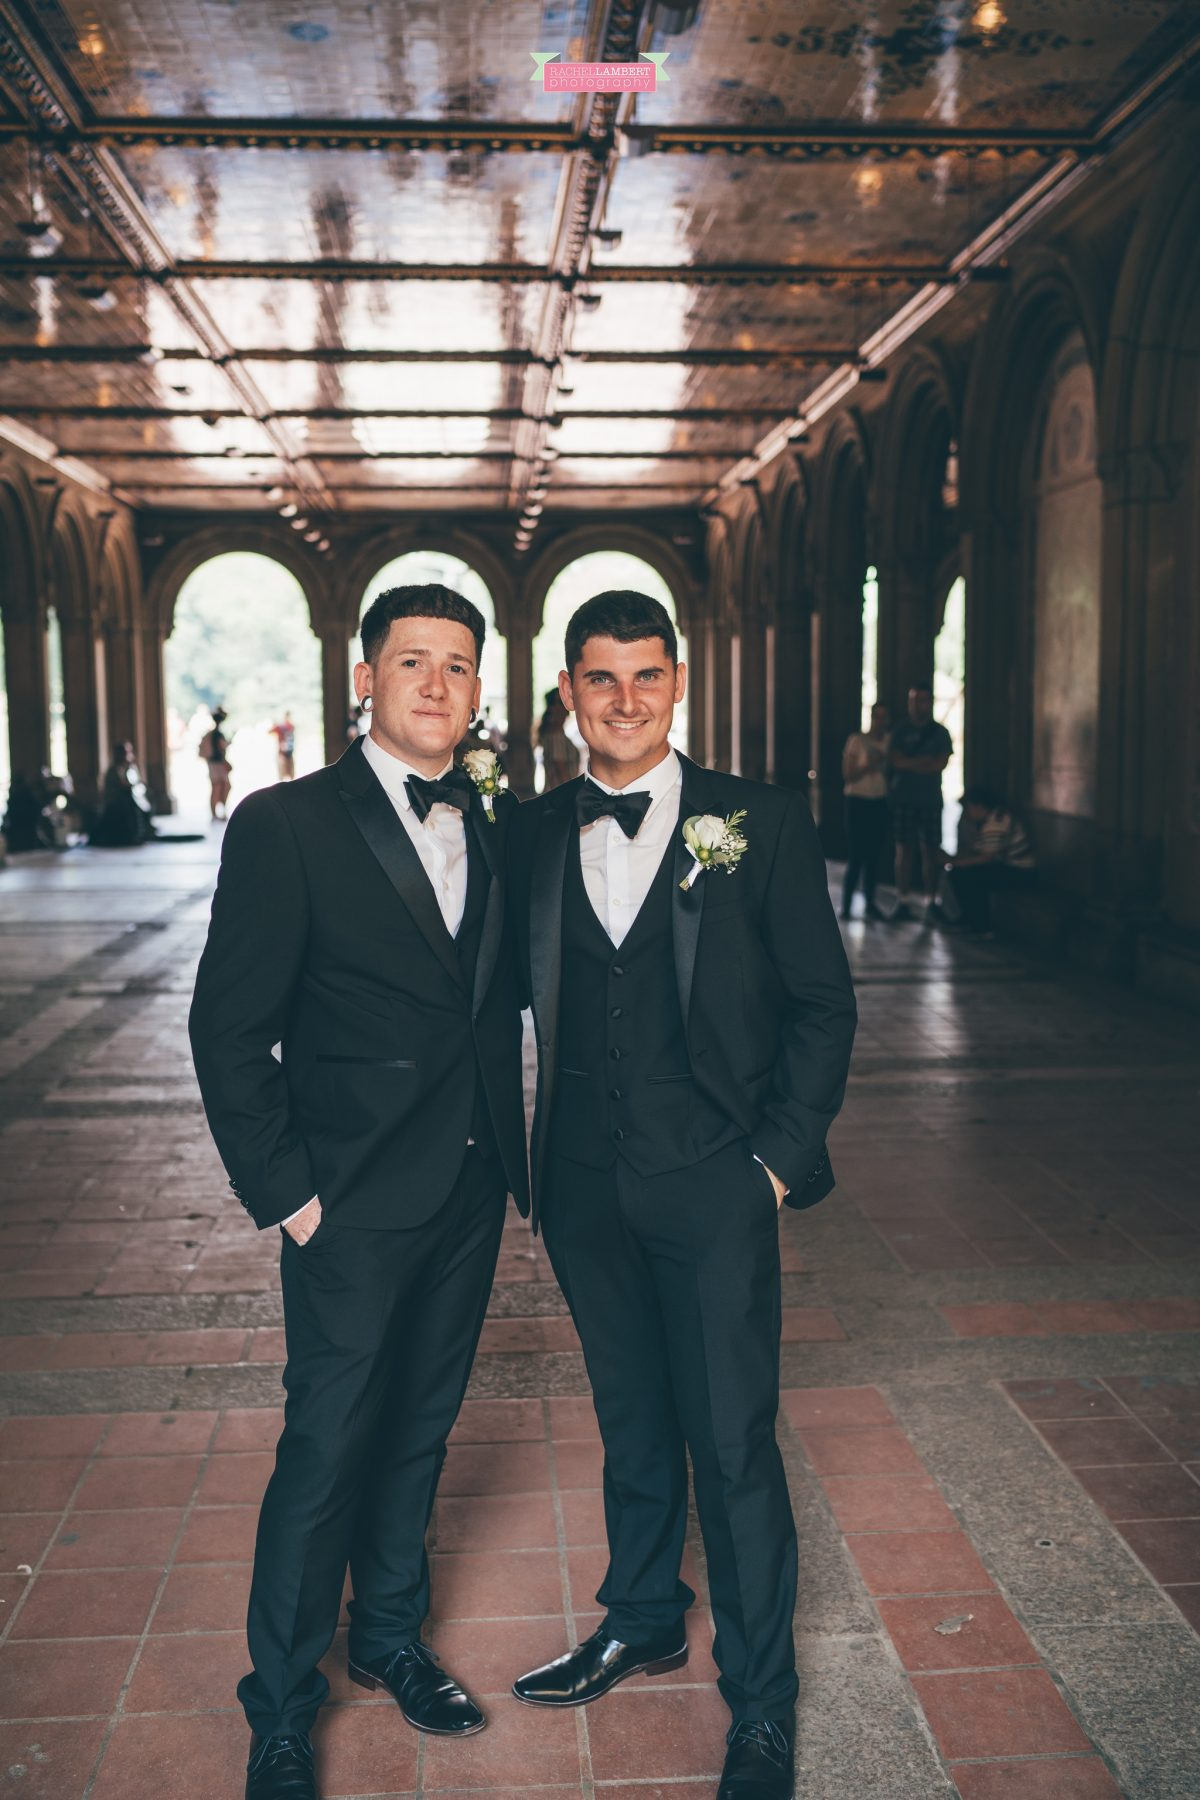 rachel lambert photography new york wedding photos groom and best man bethesda terrace bridesmaids